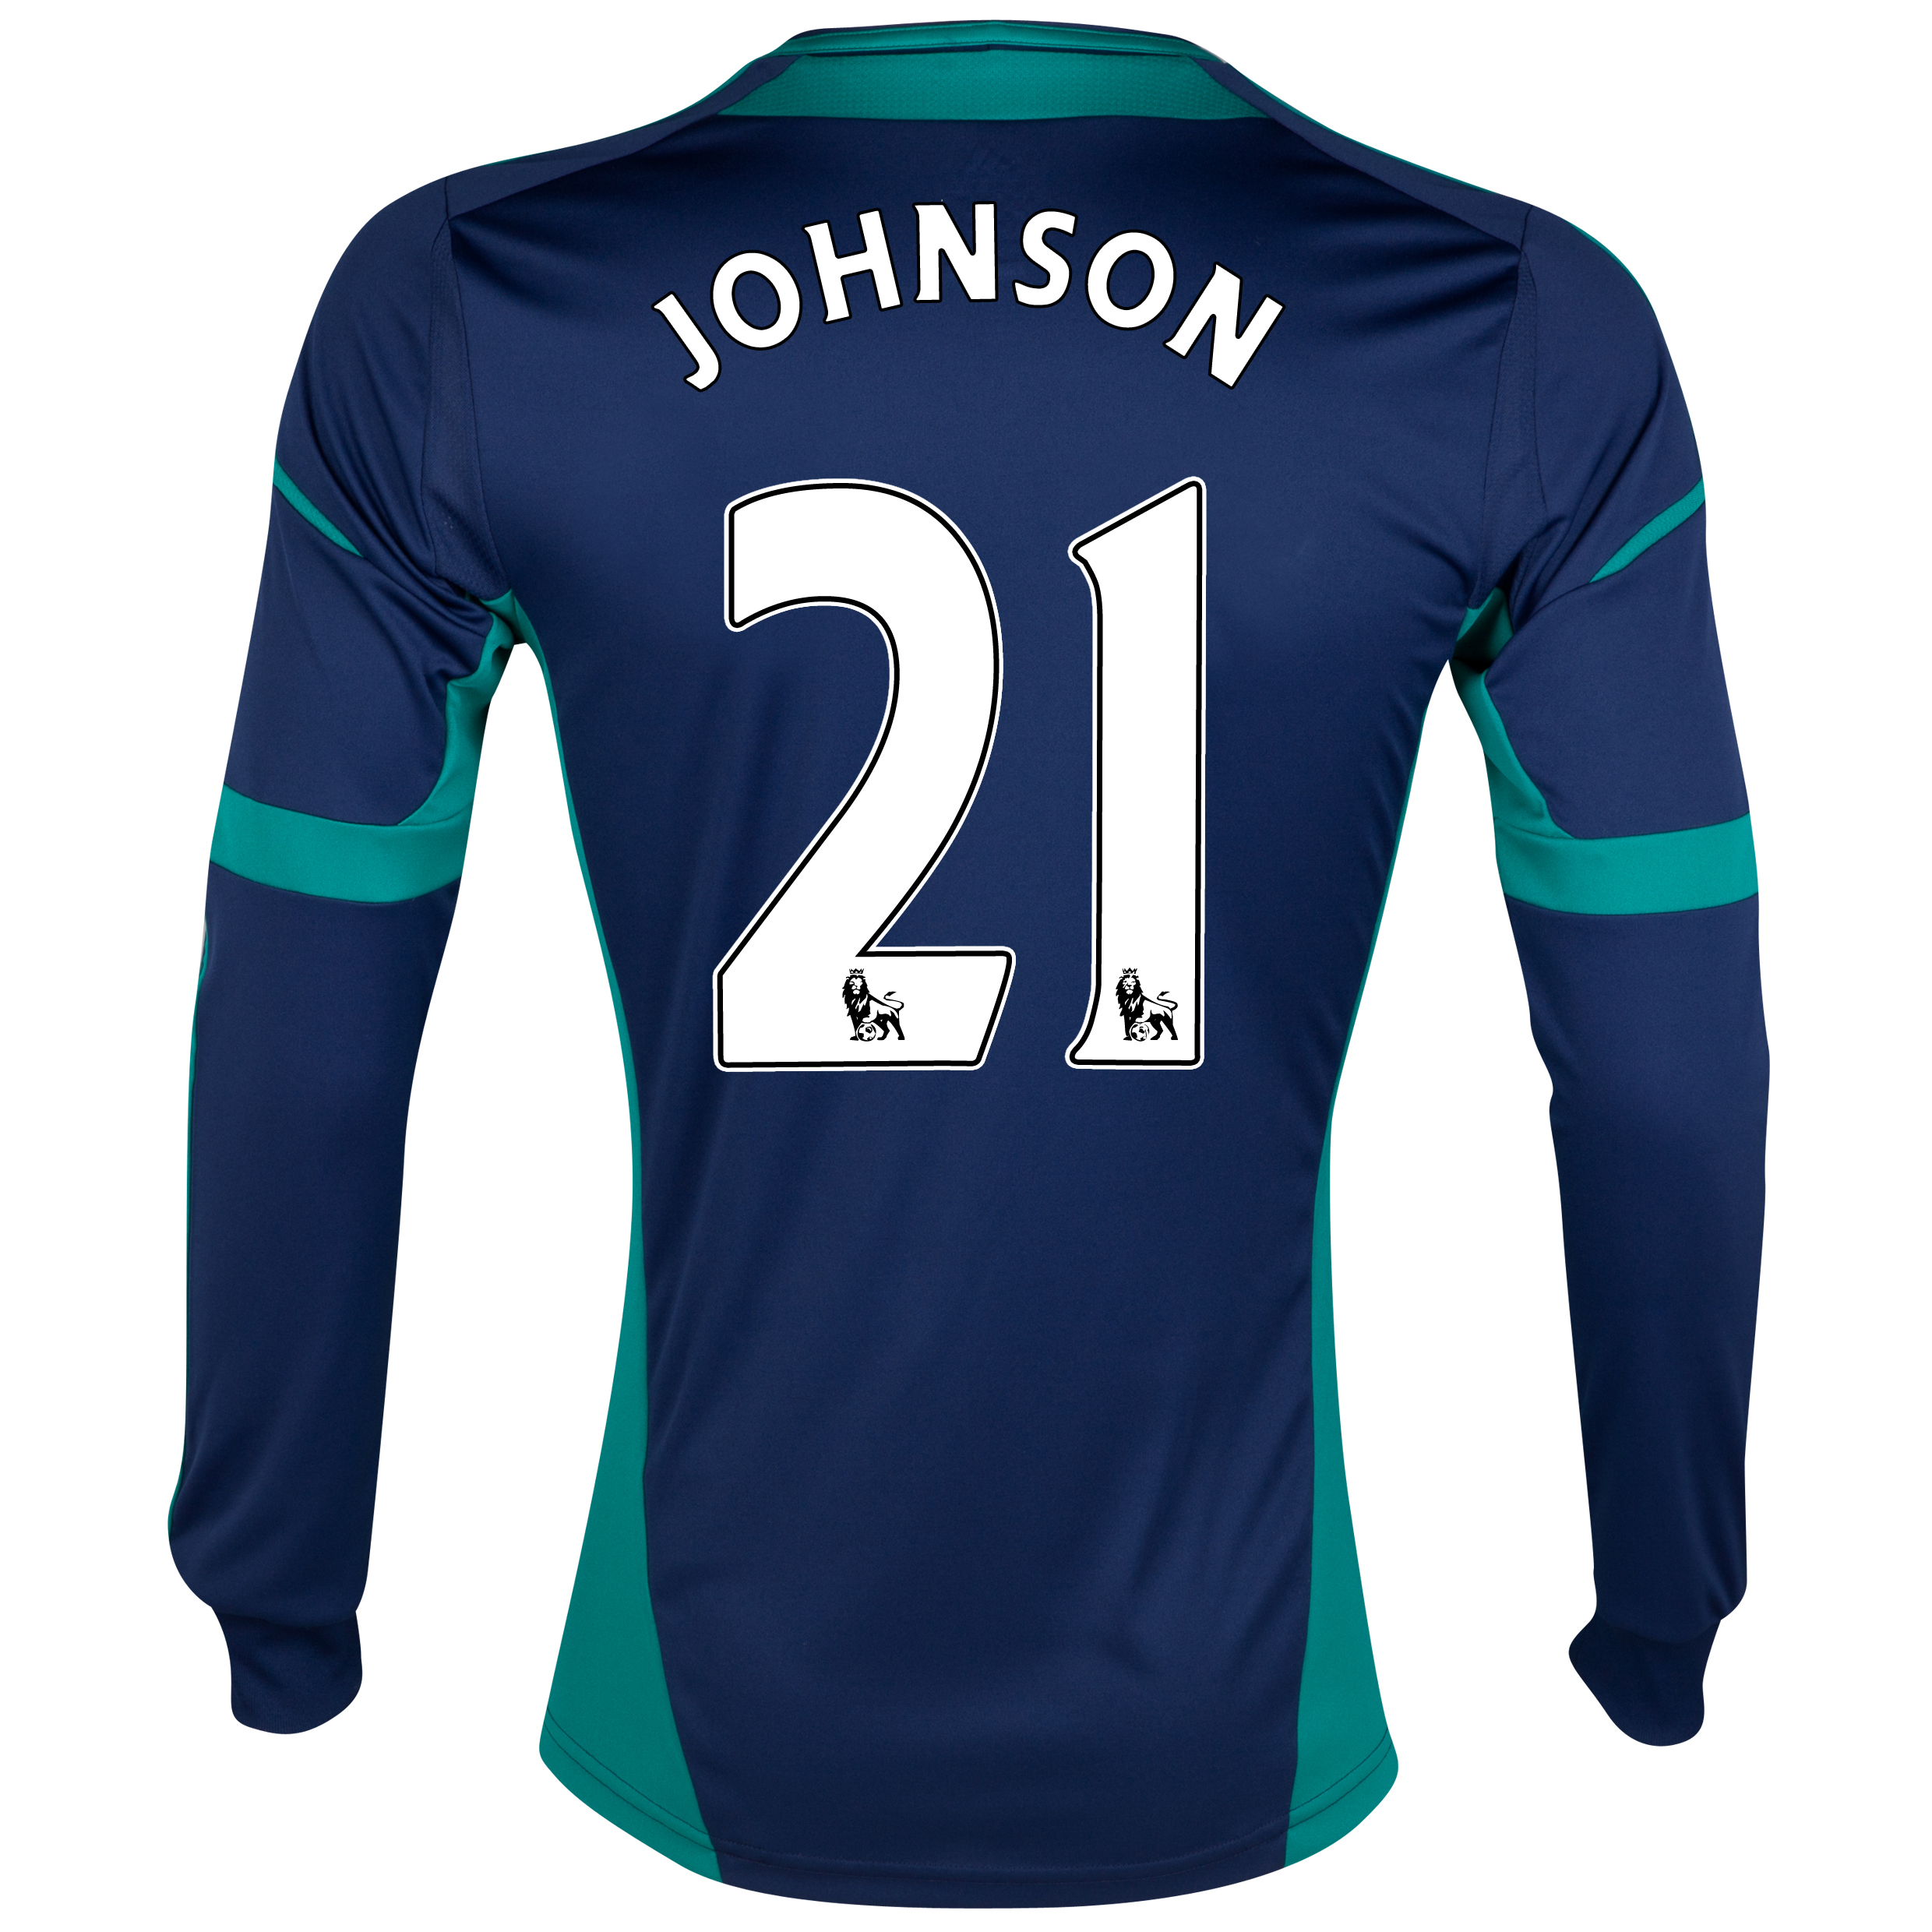 Sunderland Away Shirt 2012/13 - Long Sleeved with Johnson 21 printing